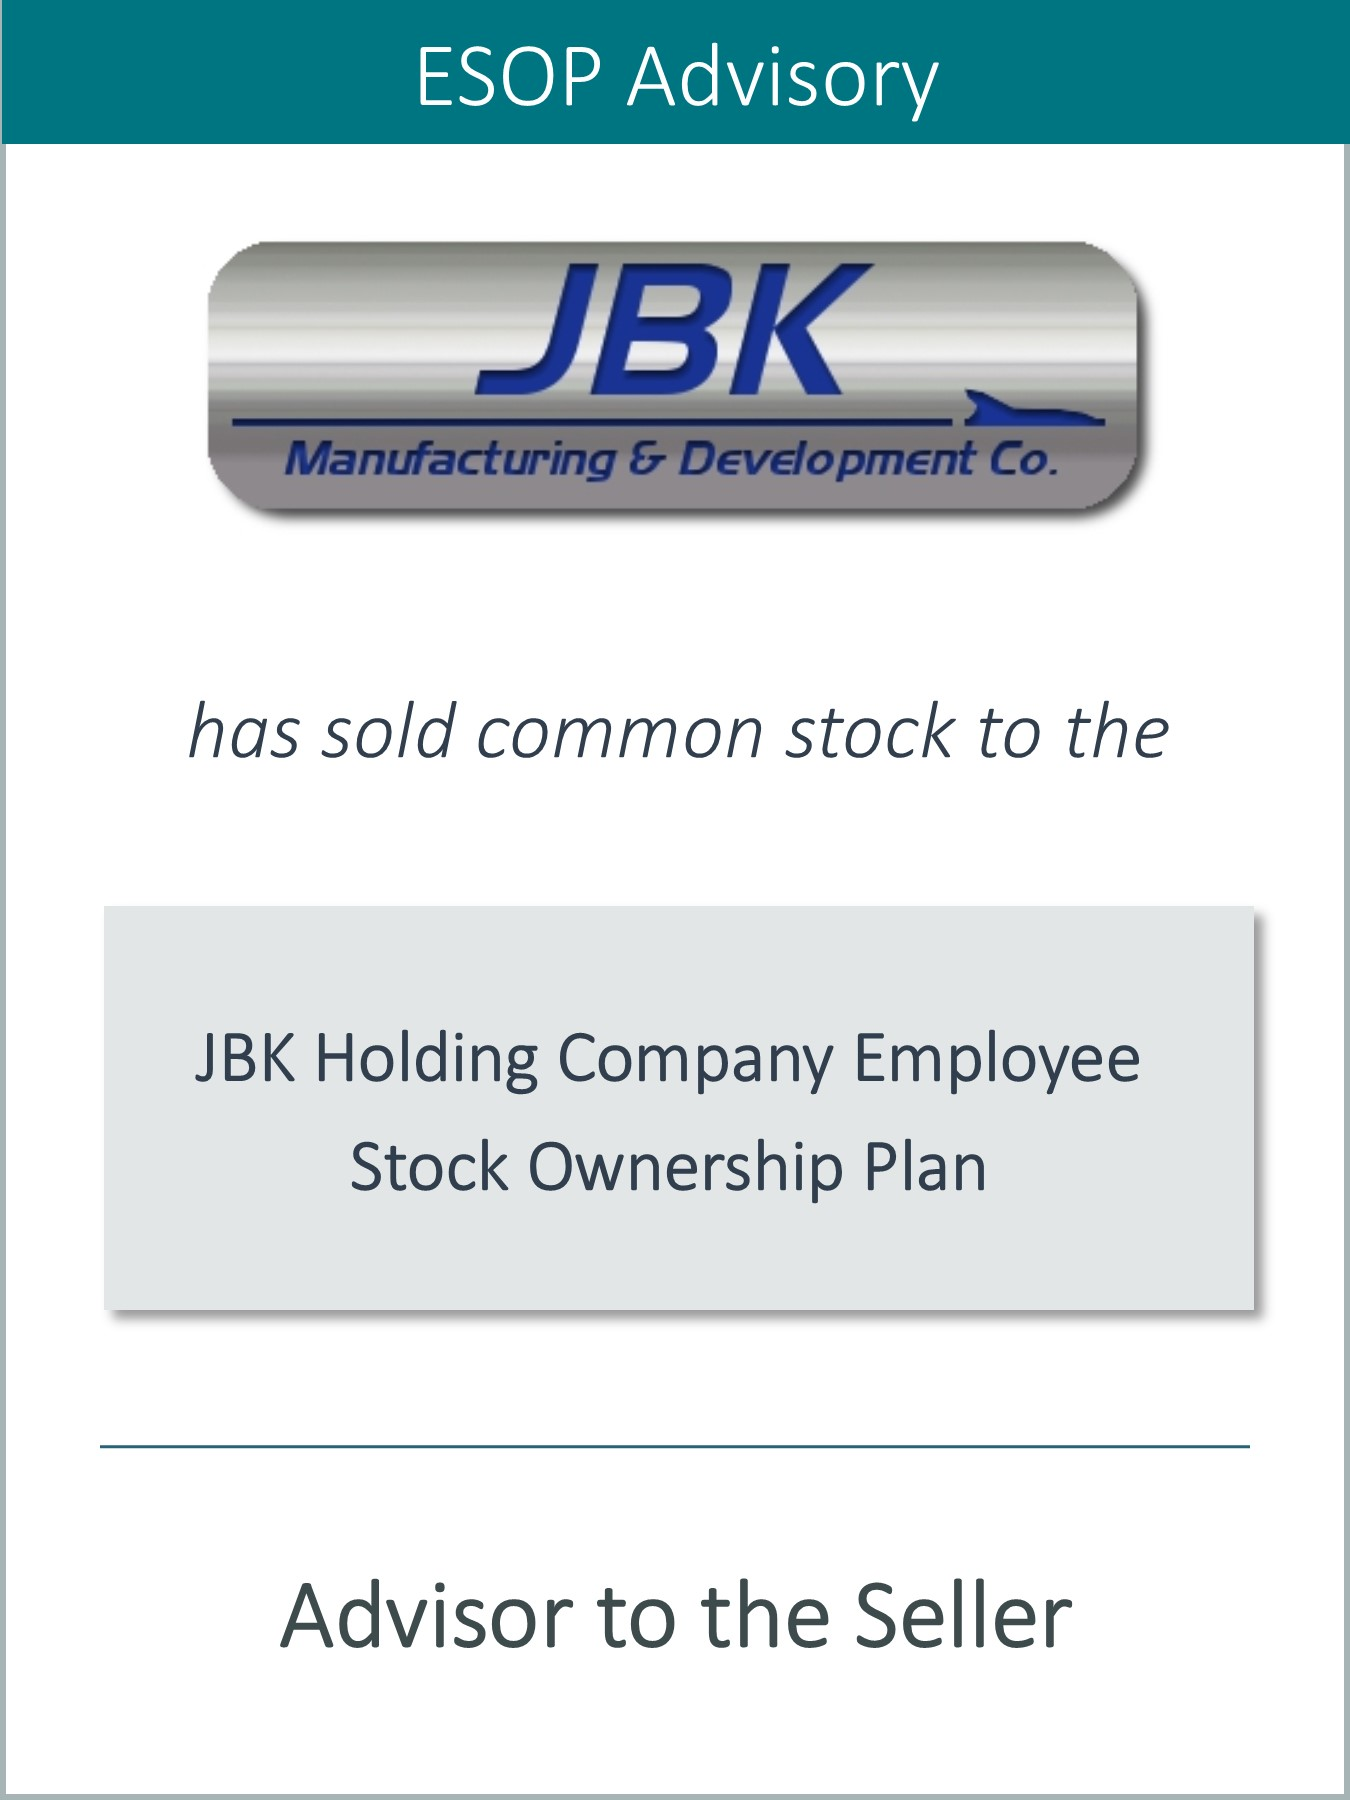 PRAIRIE IS PLEASED TO ANNOUNCE THE SALE OF JBK HOLDING COMPANY TO AN EMPLOYEE STOCK OWNERSHIP PLAN